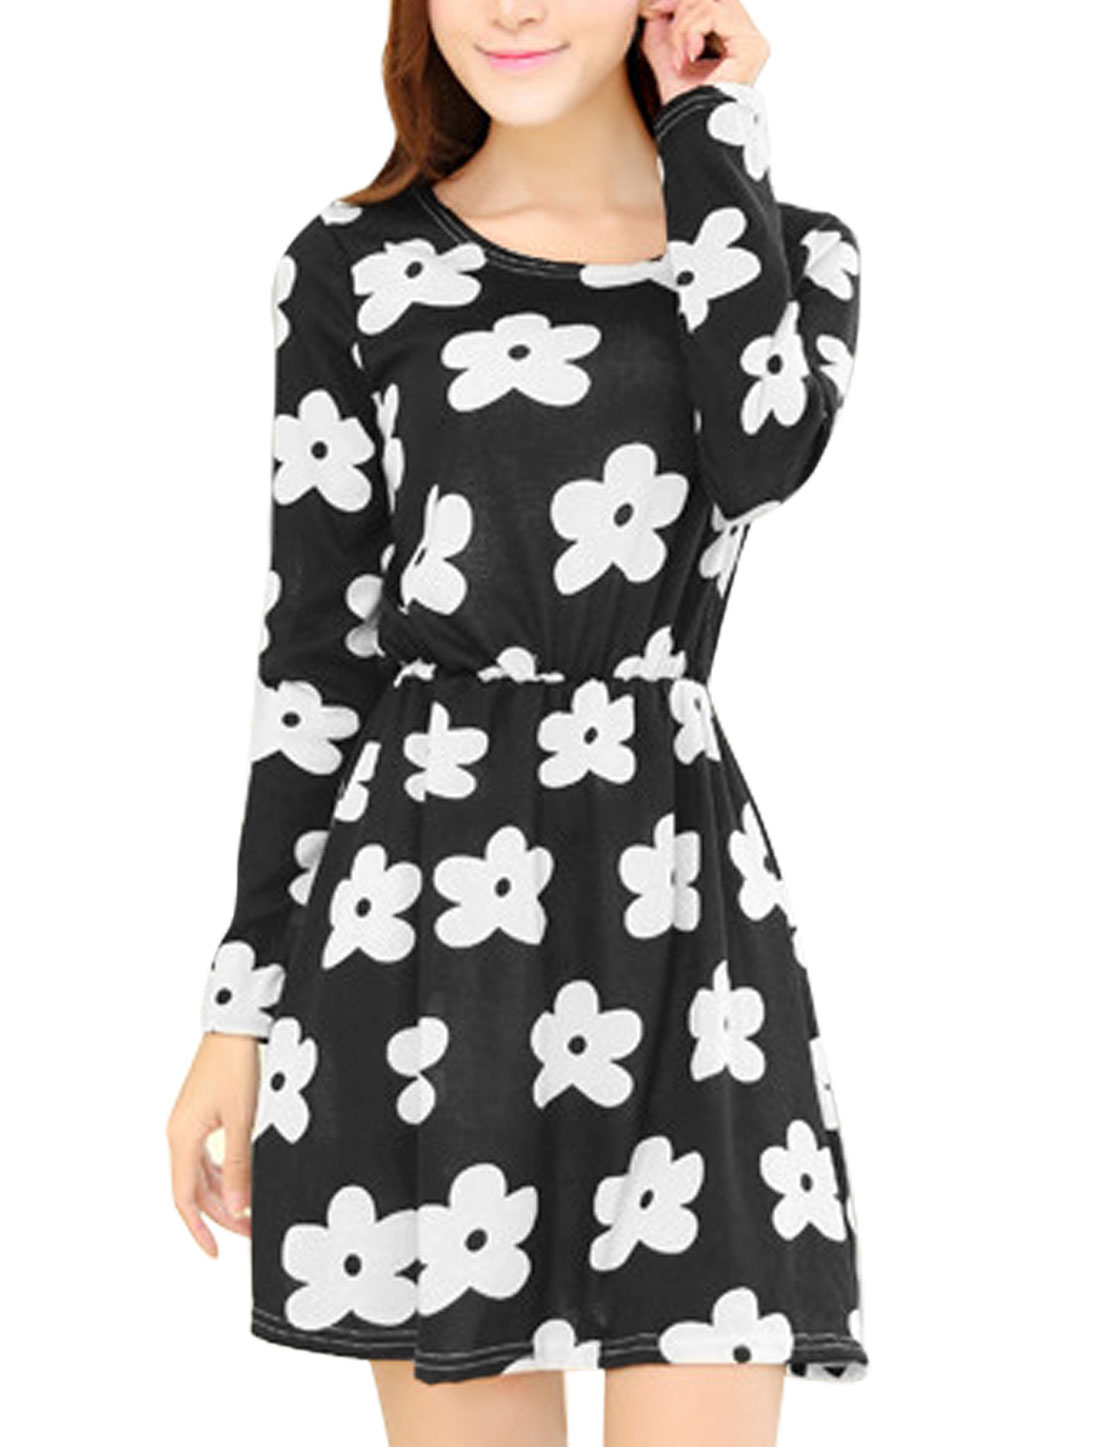 Women Round Neck Long Sleeve Floral Prints Casual A-Line Knit Dress Black XS